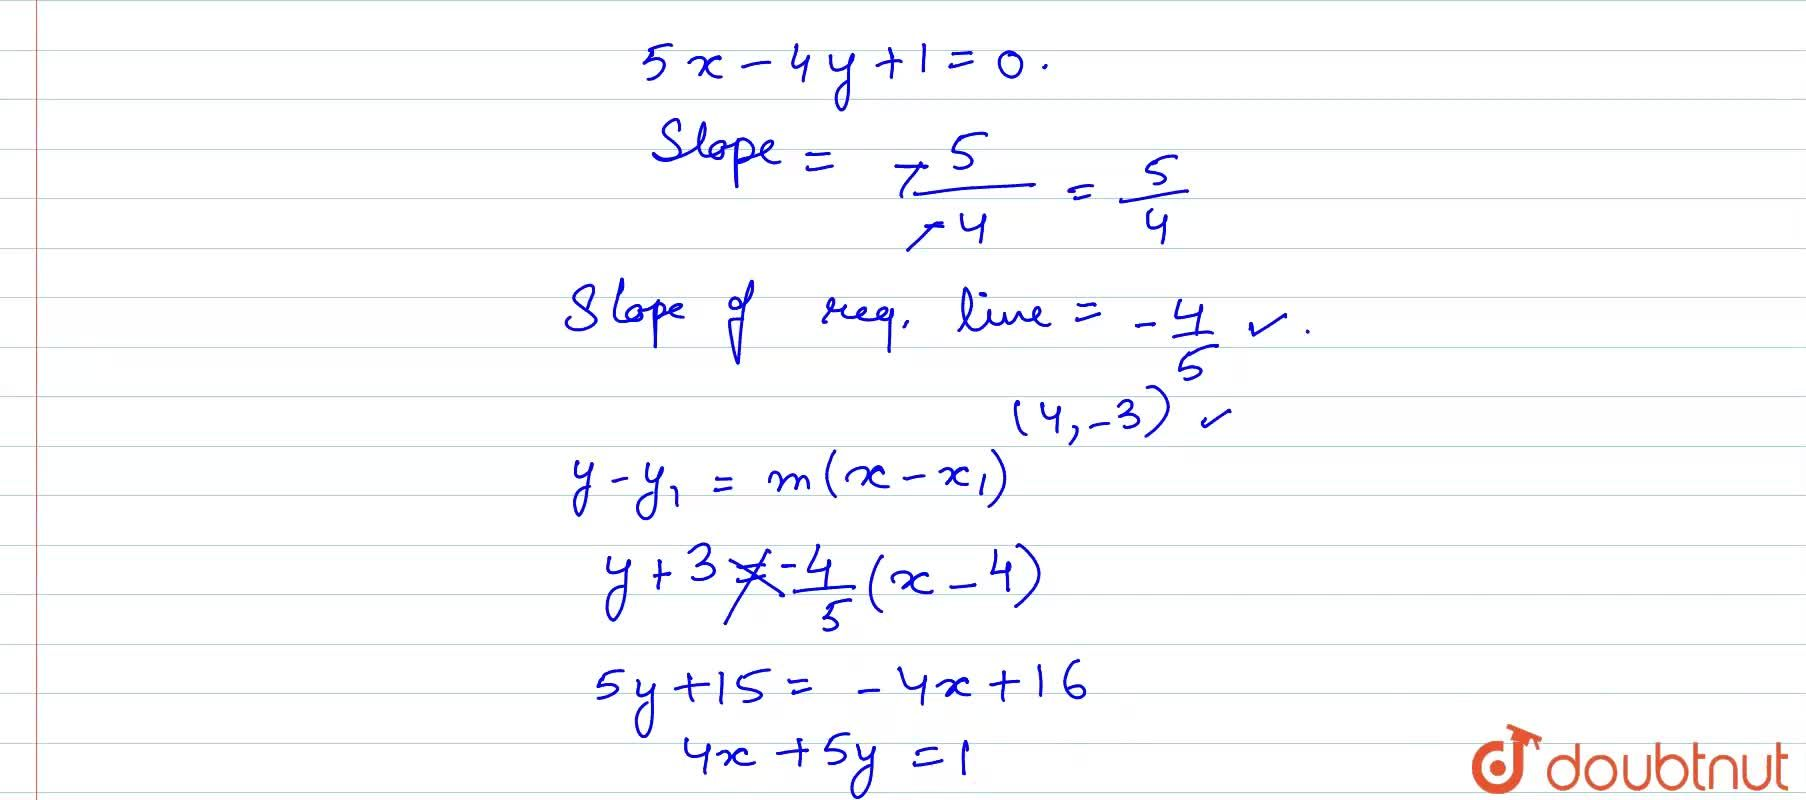 Find the equation of the line through the intersection of the lines 3x+y-9=0 and 4x+3y-7=0 and which is perpendicular to the line 5x-4y+1=0.